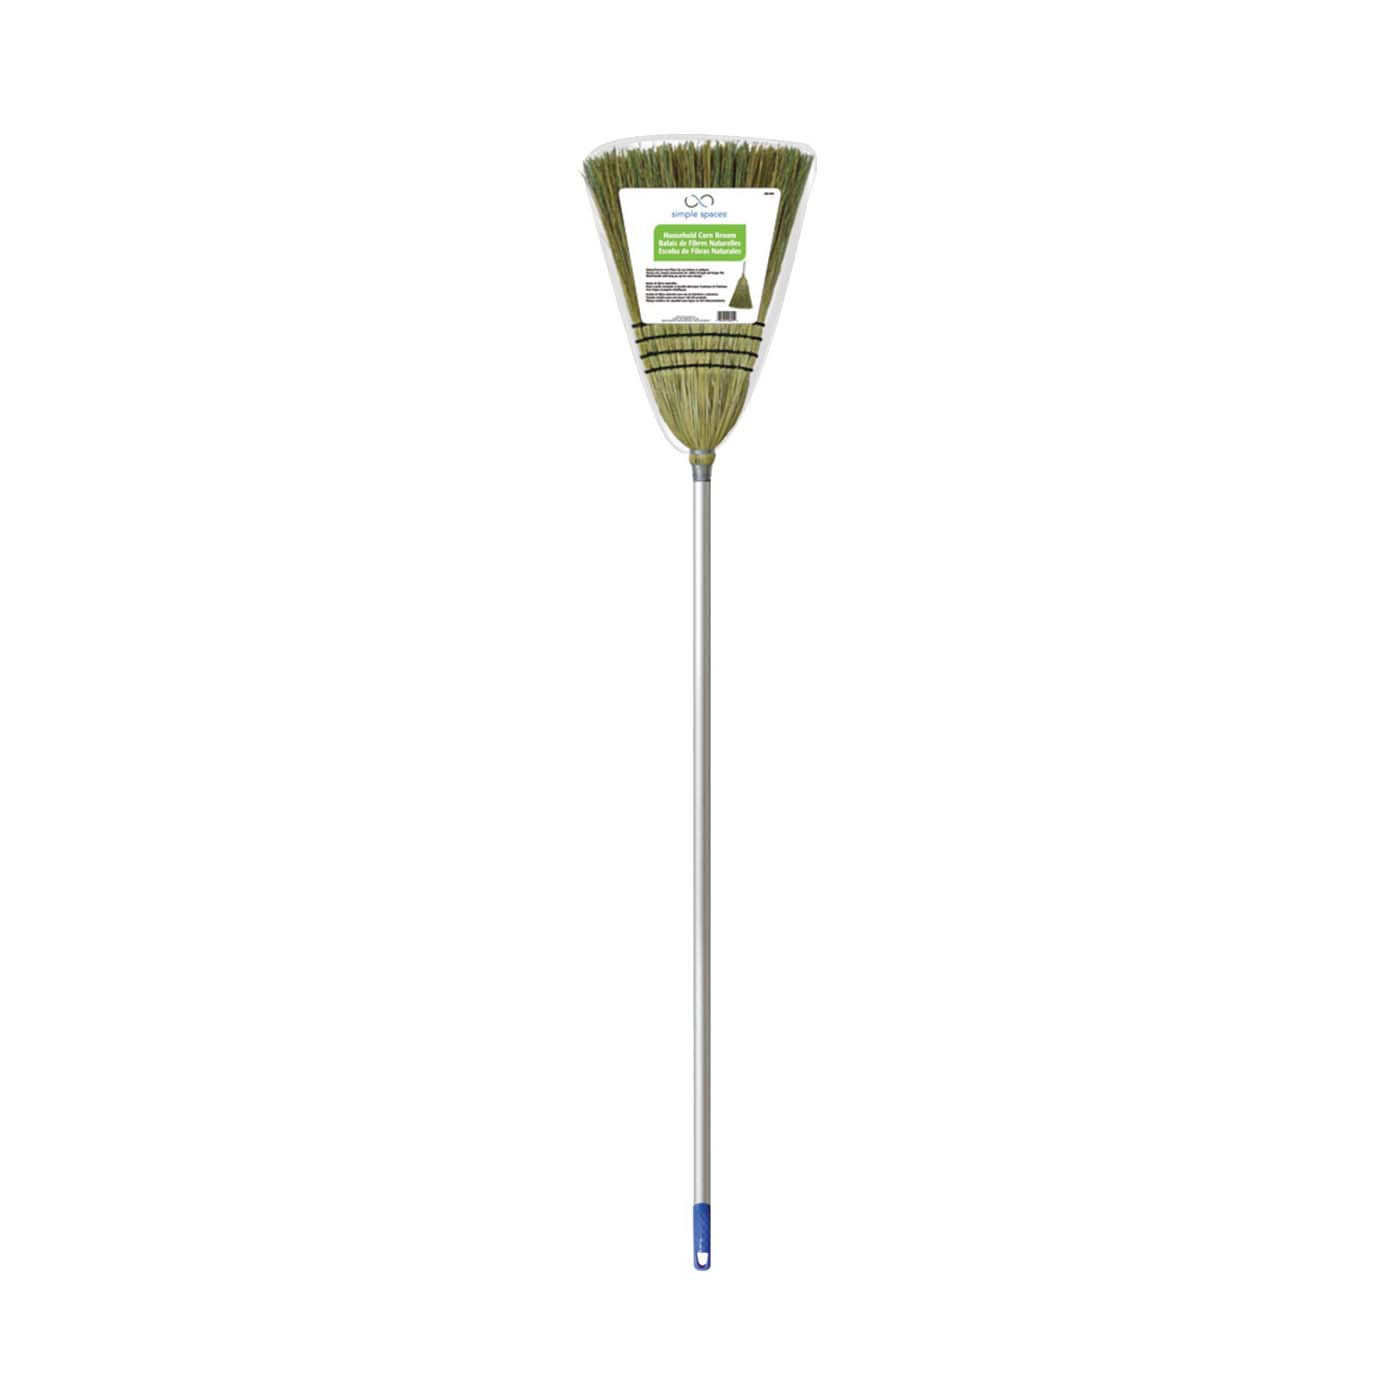 Picture of Simple Spaces 105 Household Broom, Fiber Bristle, Metal Handle